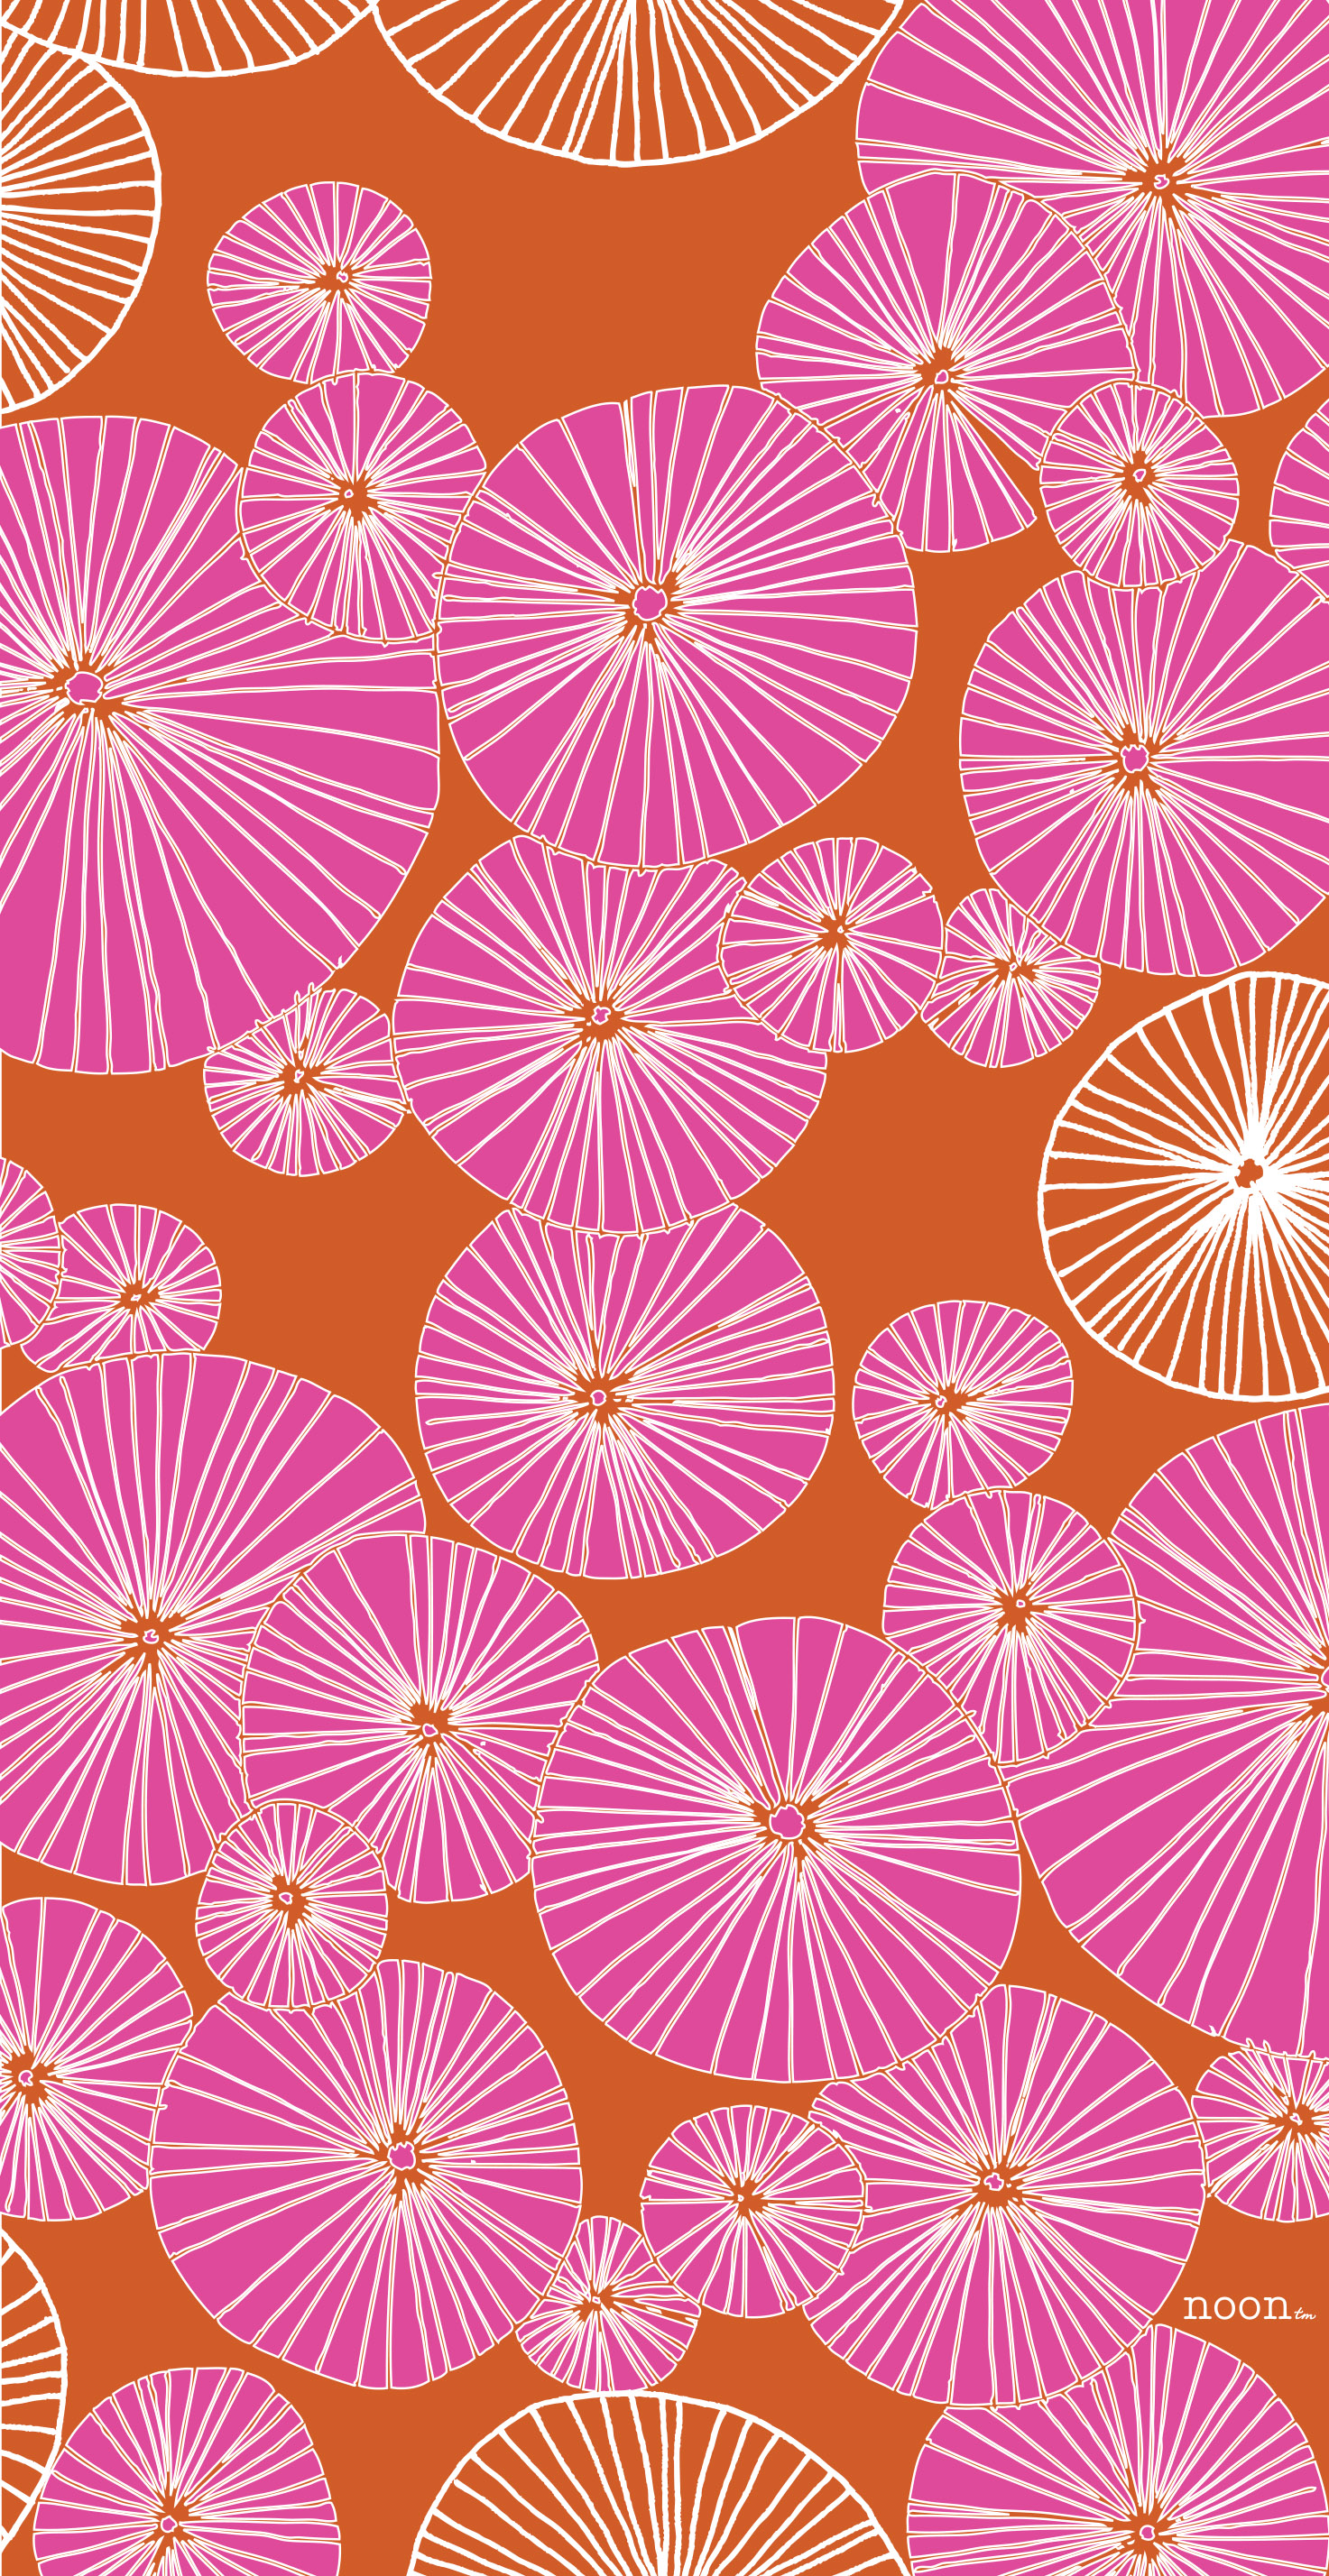 00503-NoonDesign-Urchin_34x66_V2-proof